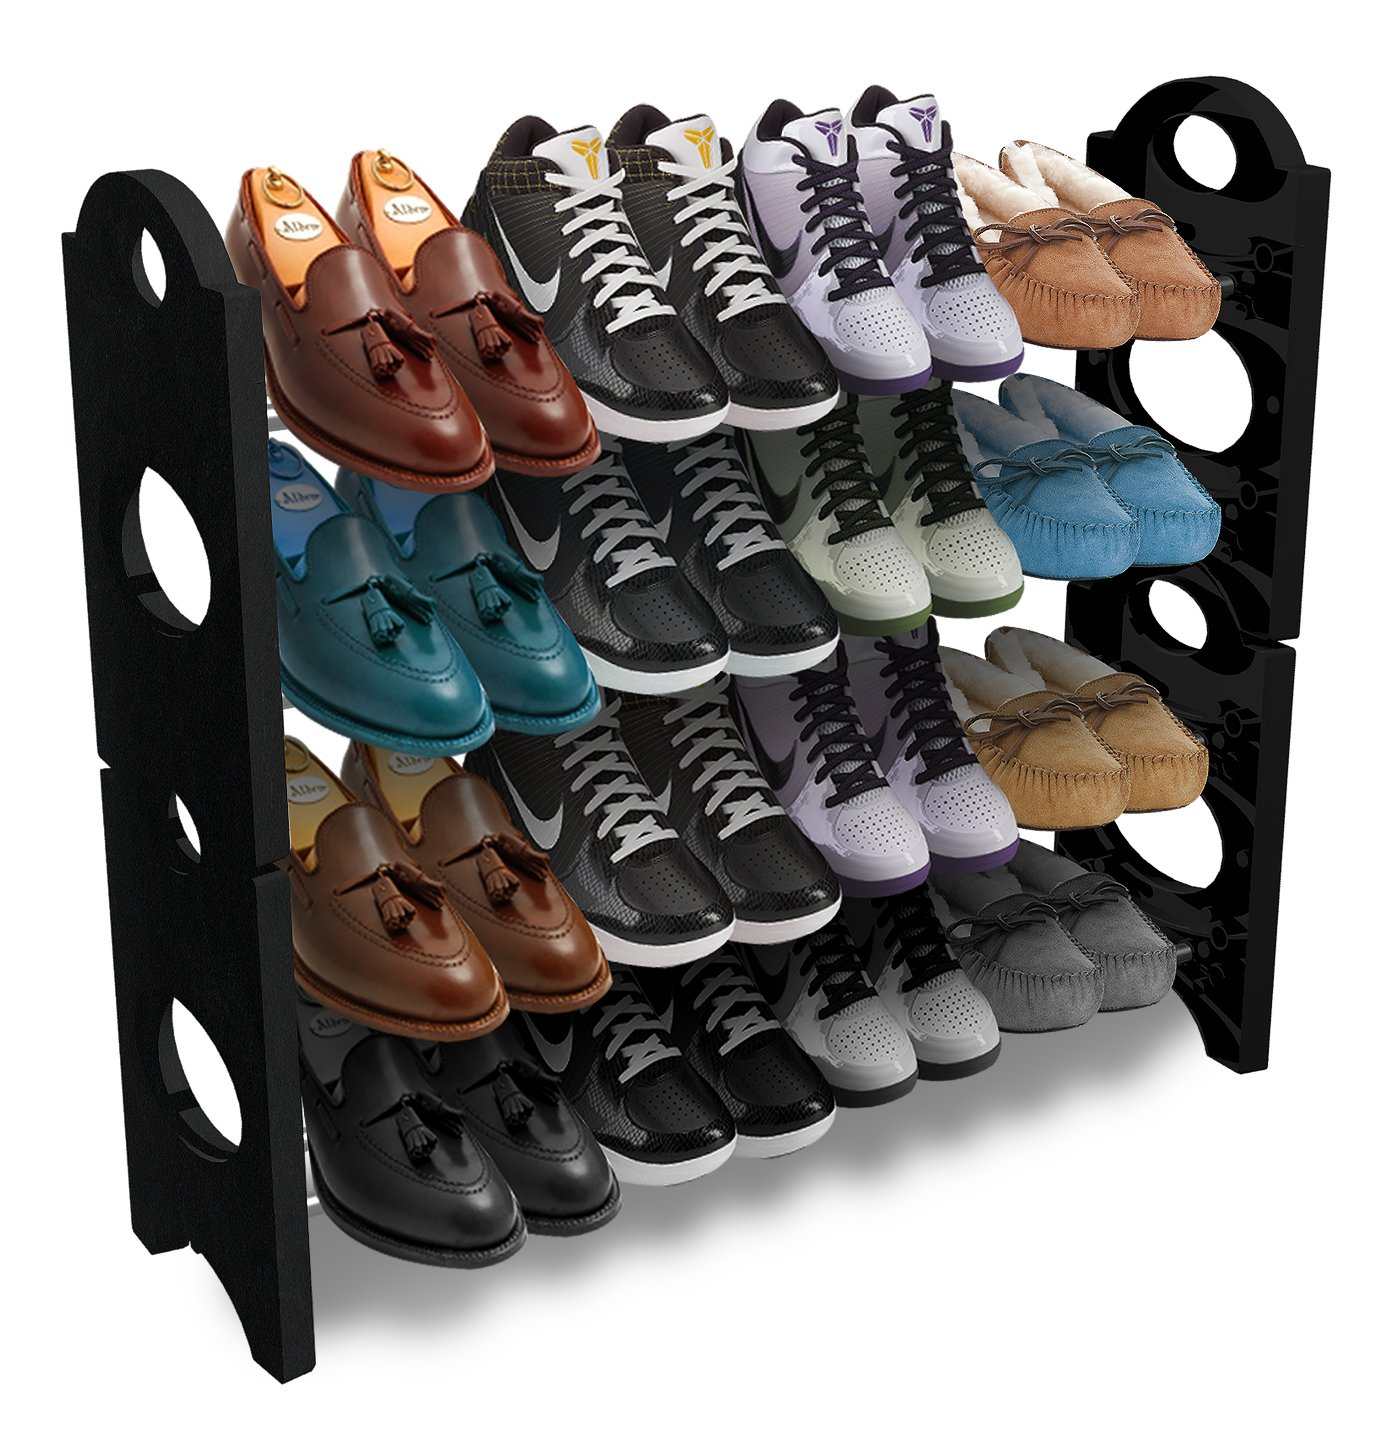 Amazon.com: Sorbus Shoe Rack Organizer Storage U2013 Stackable And Detachable U2013  Easy To Assemble U2013 No Tools Required, 4 Shelf: Home U0026 Kitchen